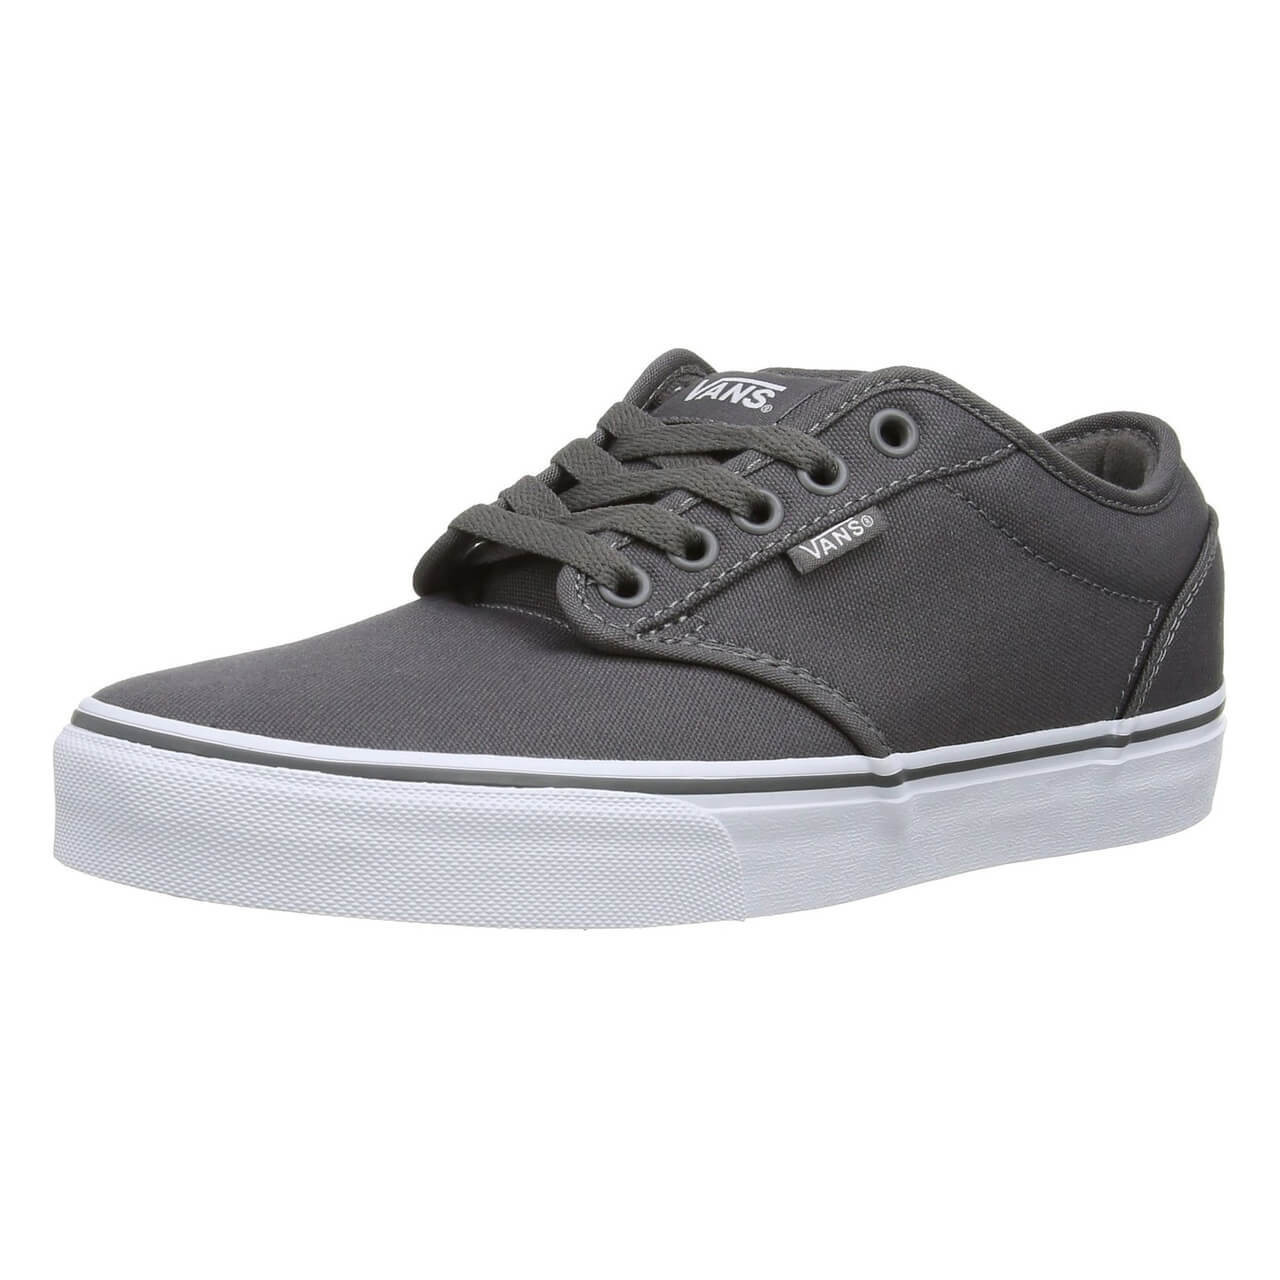 Compra > vans atwood canvas sneakers- OFF 72% - ibtte.org!